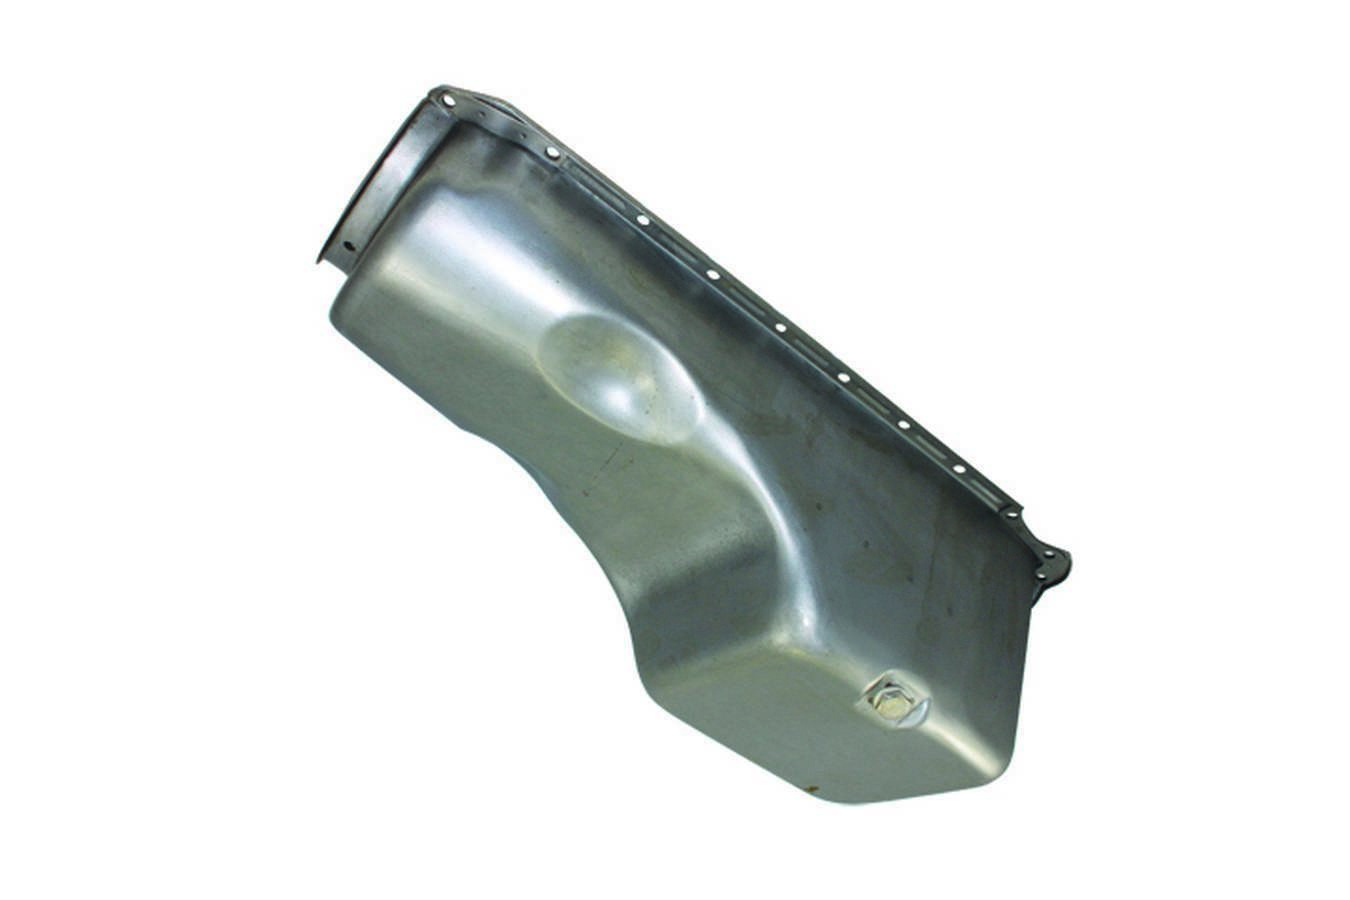 Specialty Products 7444X Engine Oil Pan, Rear Sump, 4 qt, Stock Depth, Steel, Natural, Big Block Chevy, Each